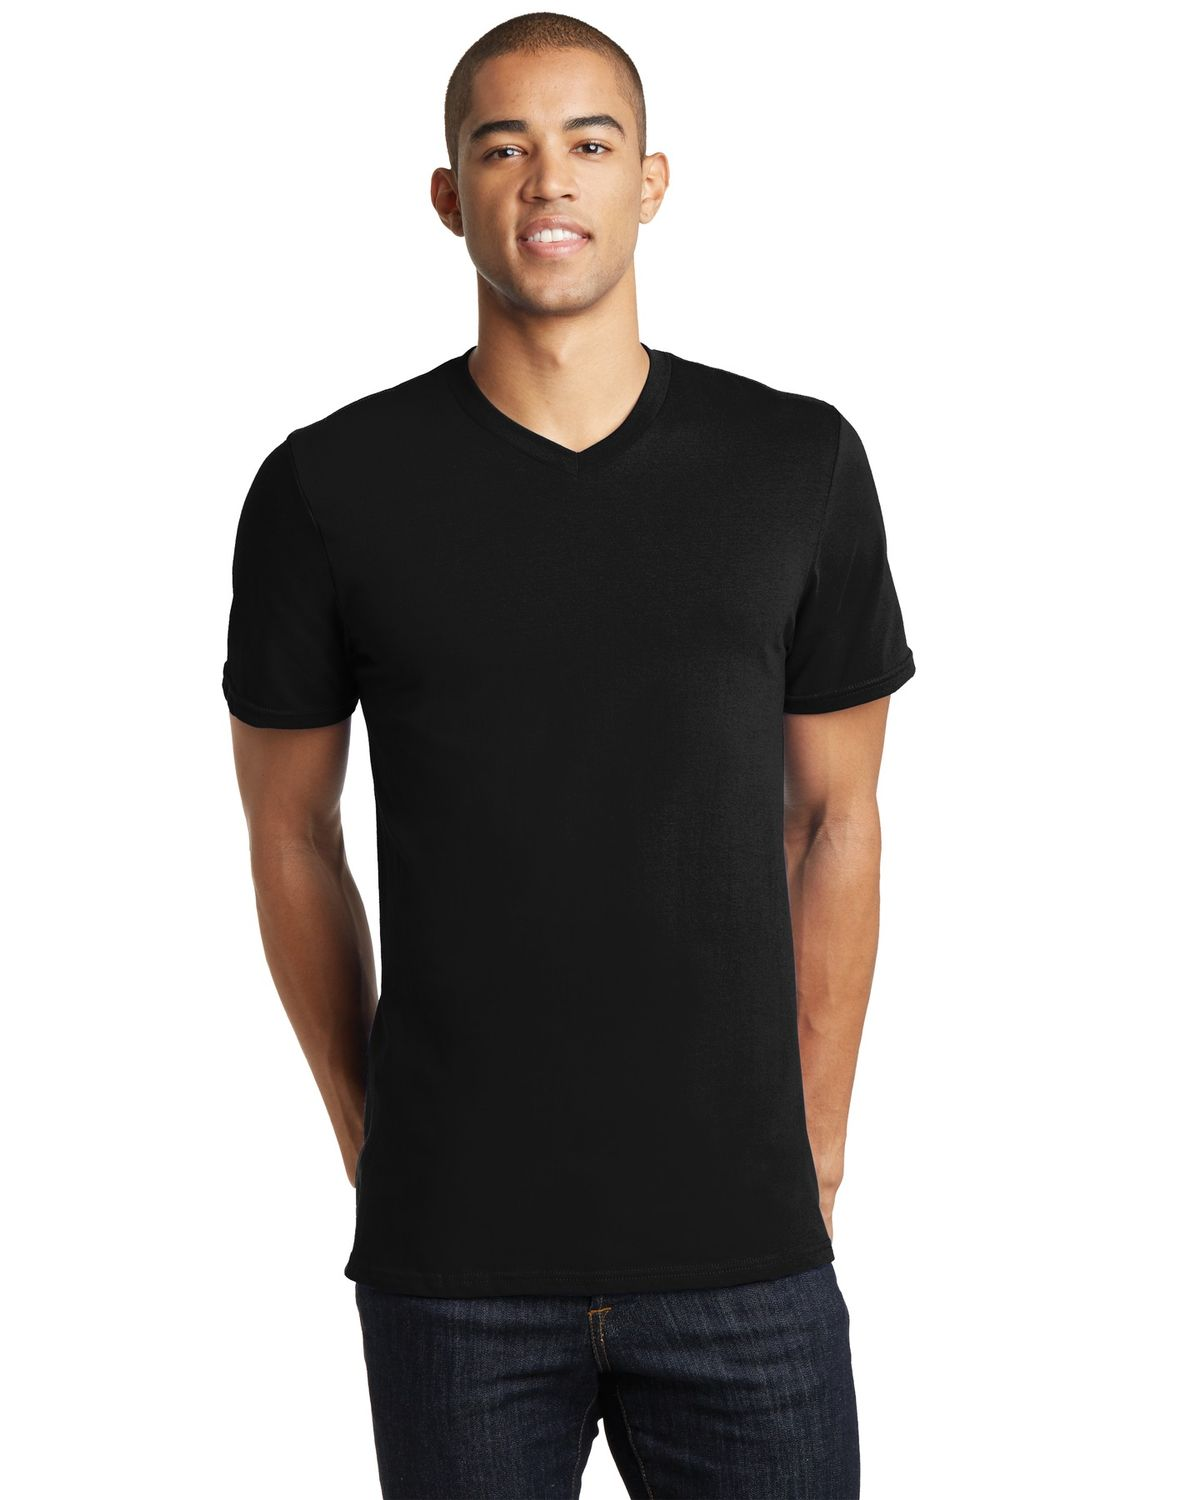 'District DT5500 Young Mens The Concert Tee V-Neck DT5500'